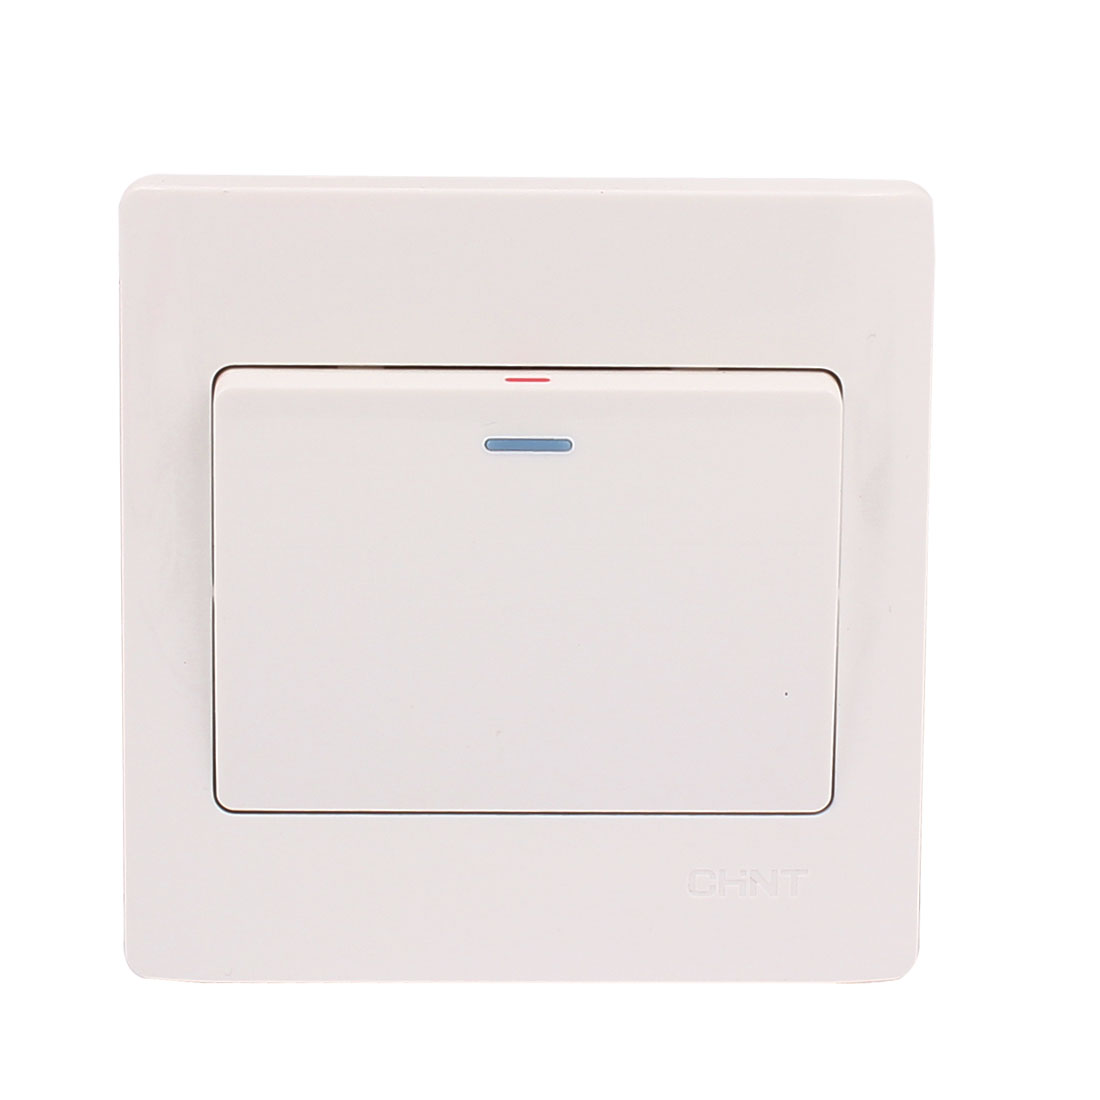 White On/Off Press Button Single Gang Wall Mount Light Control Switch Plate AC 250V 10A